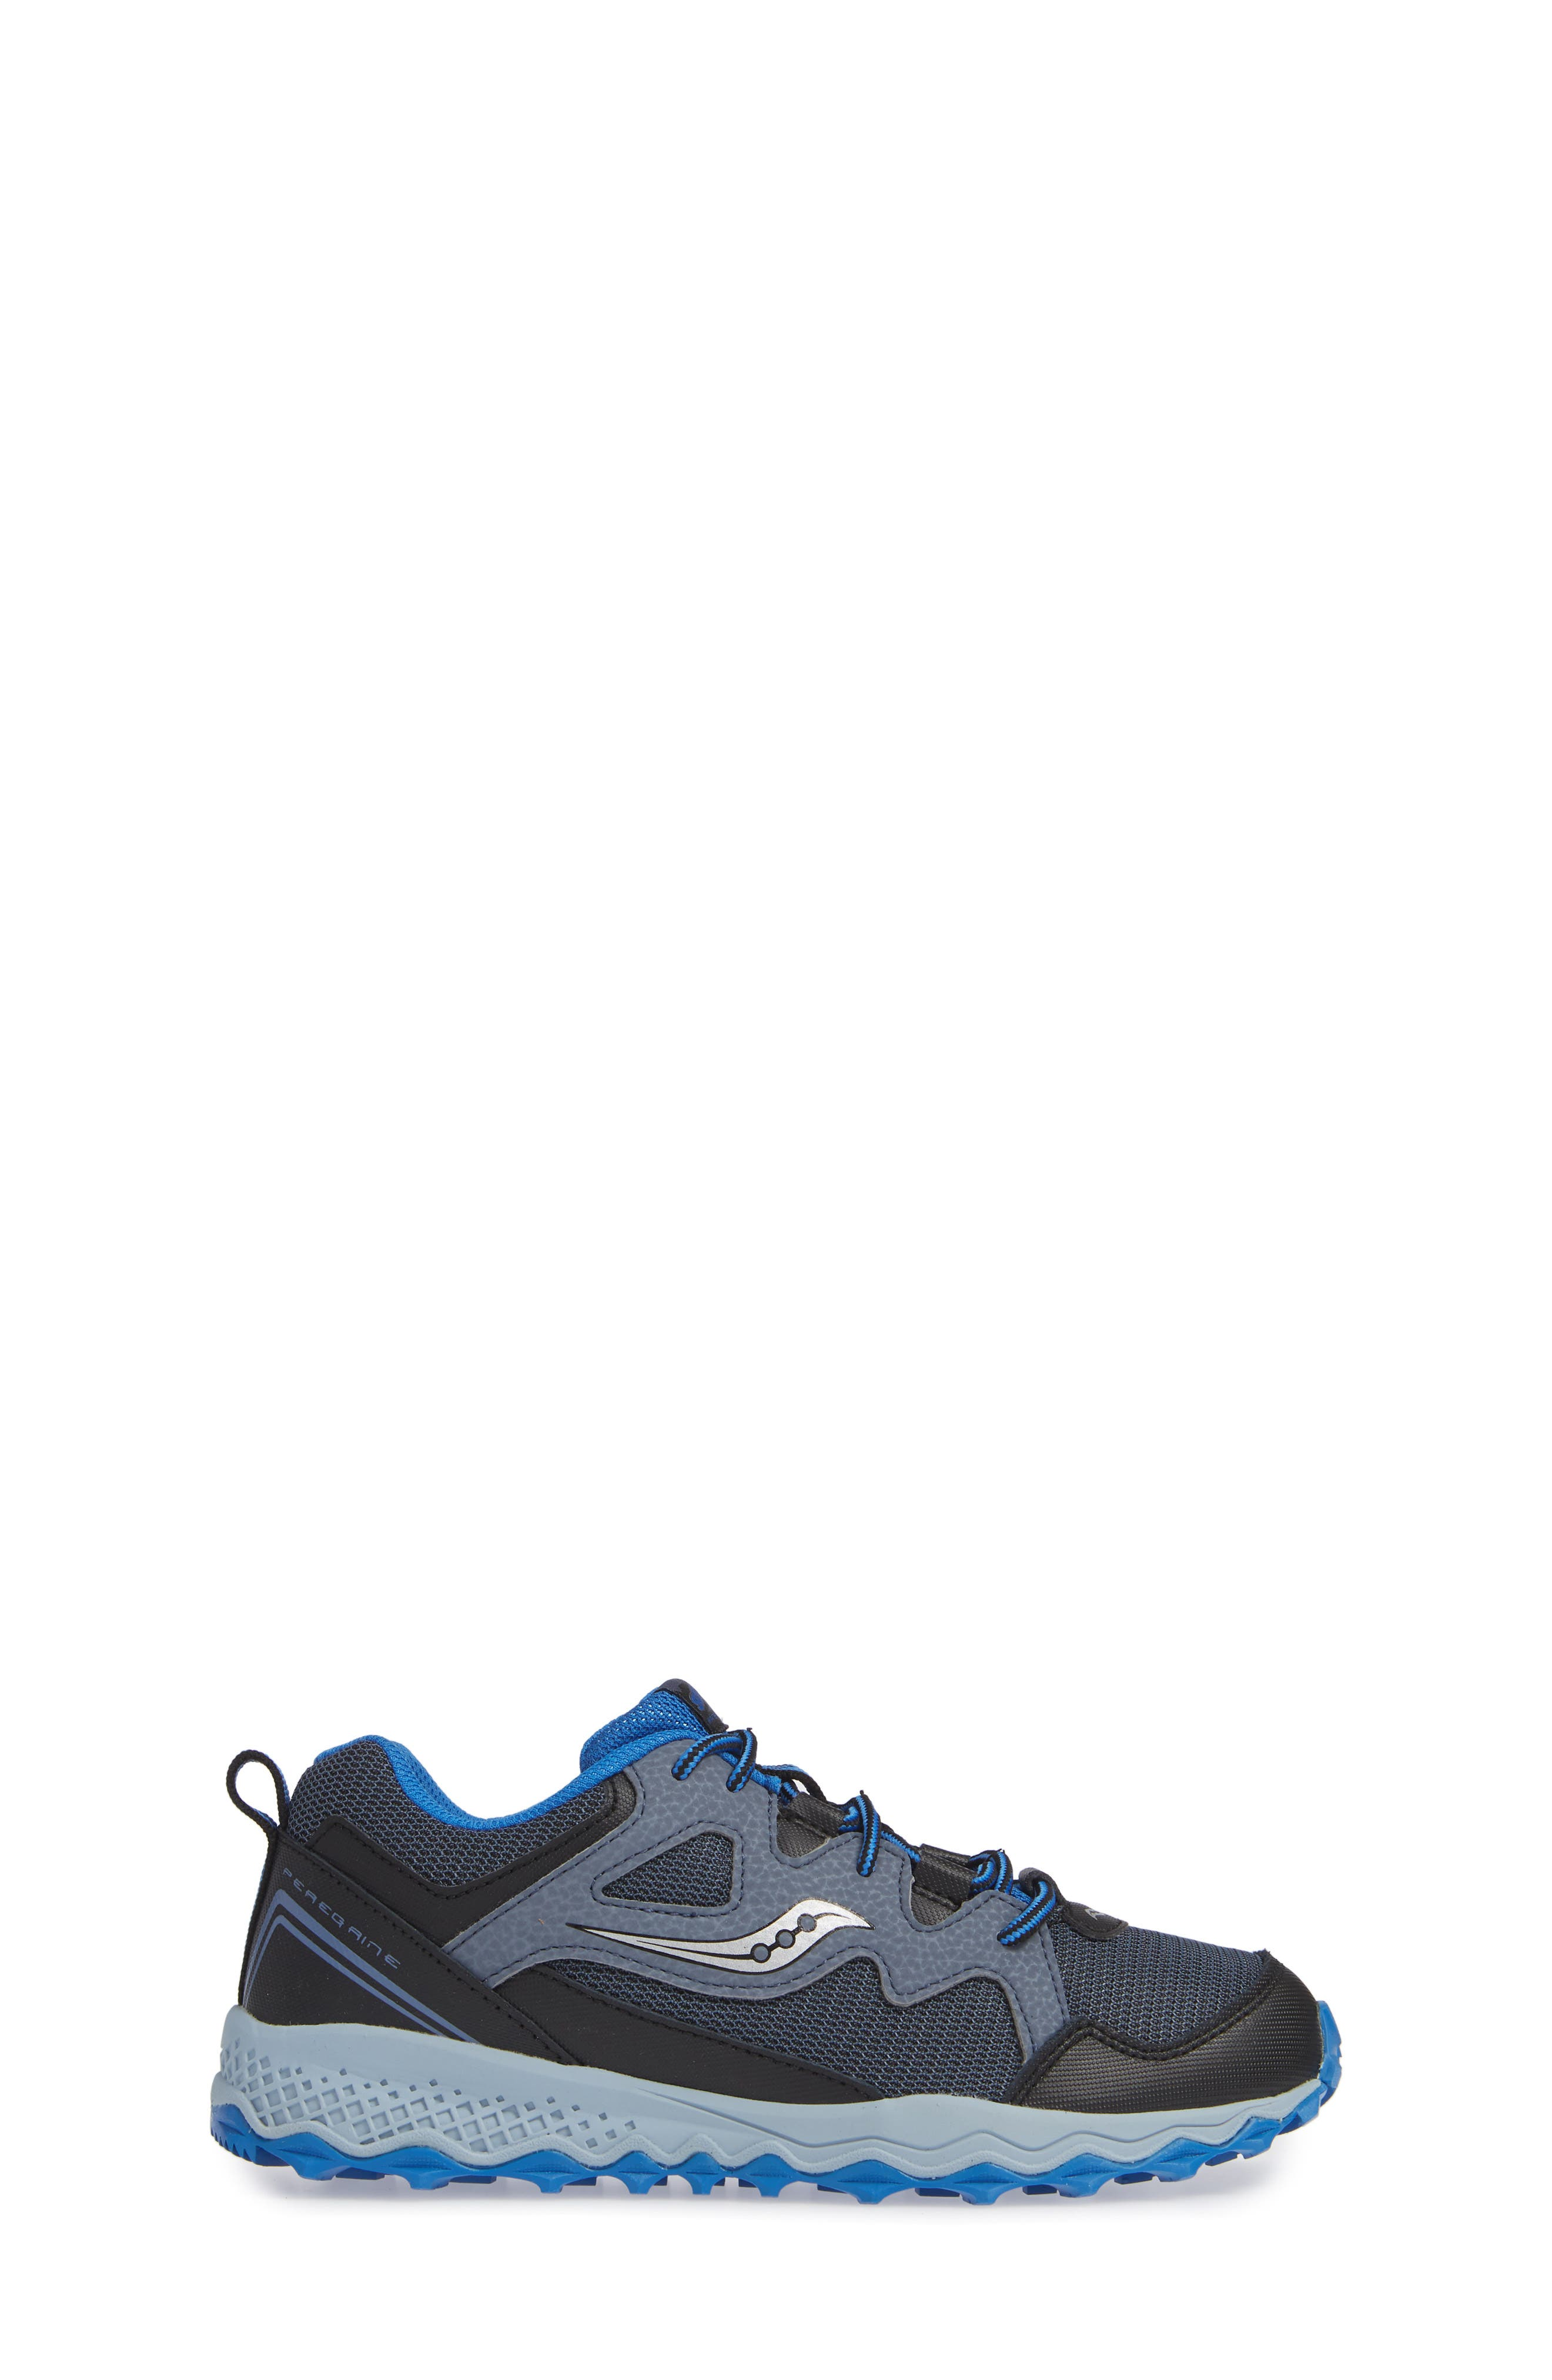 Peregrine Shield 2 Water Repellent Sneaker,                             Alternate thumbnail 3, color,                             GREY LEATHER/ MESH